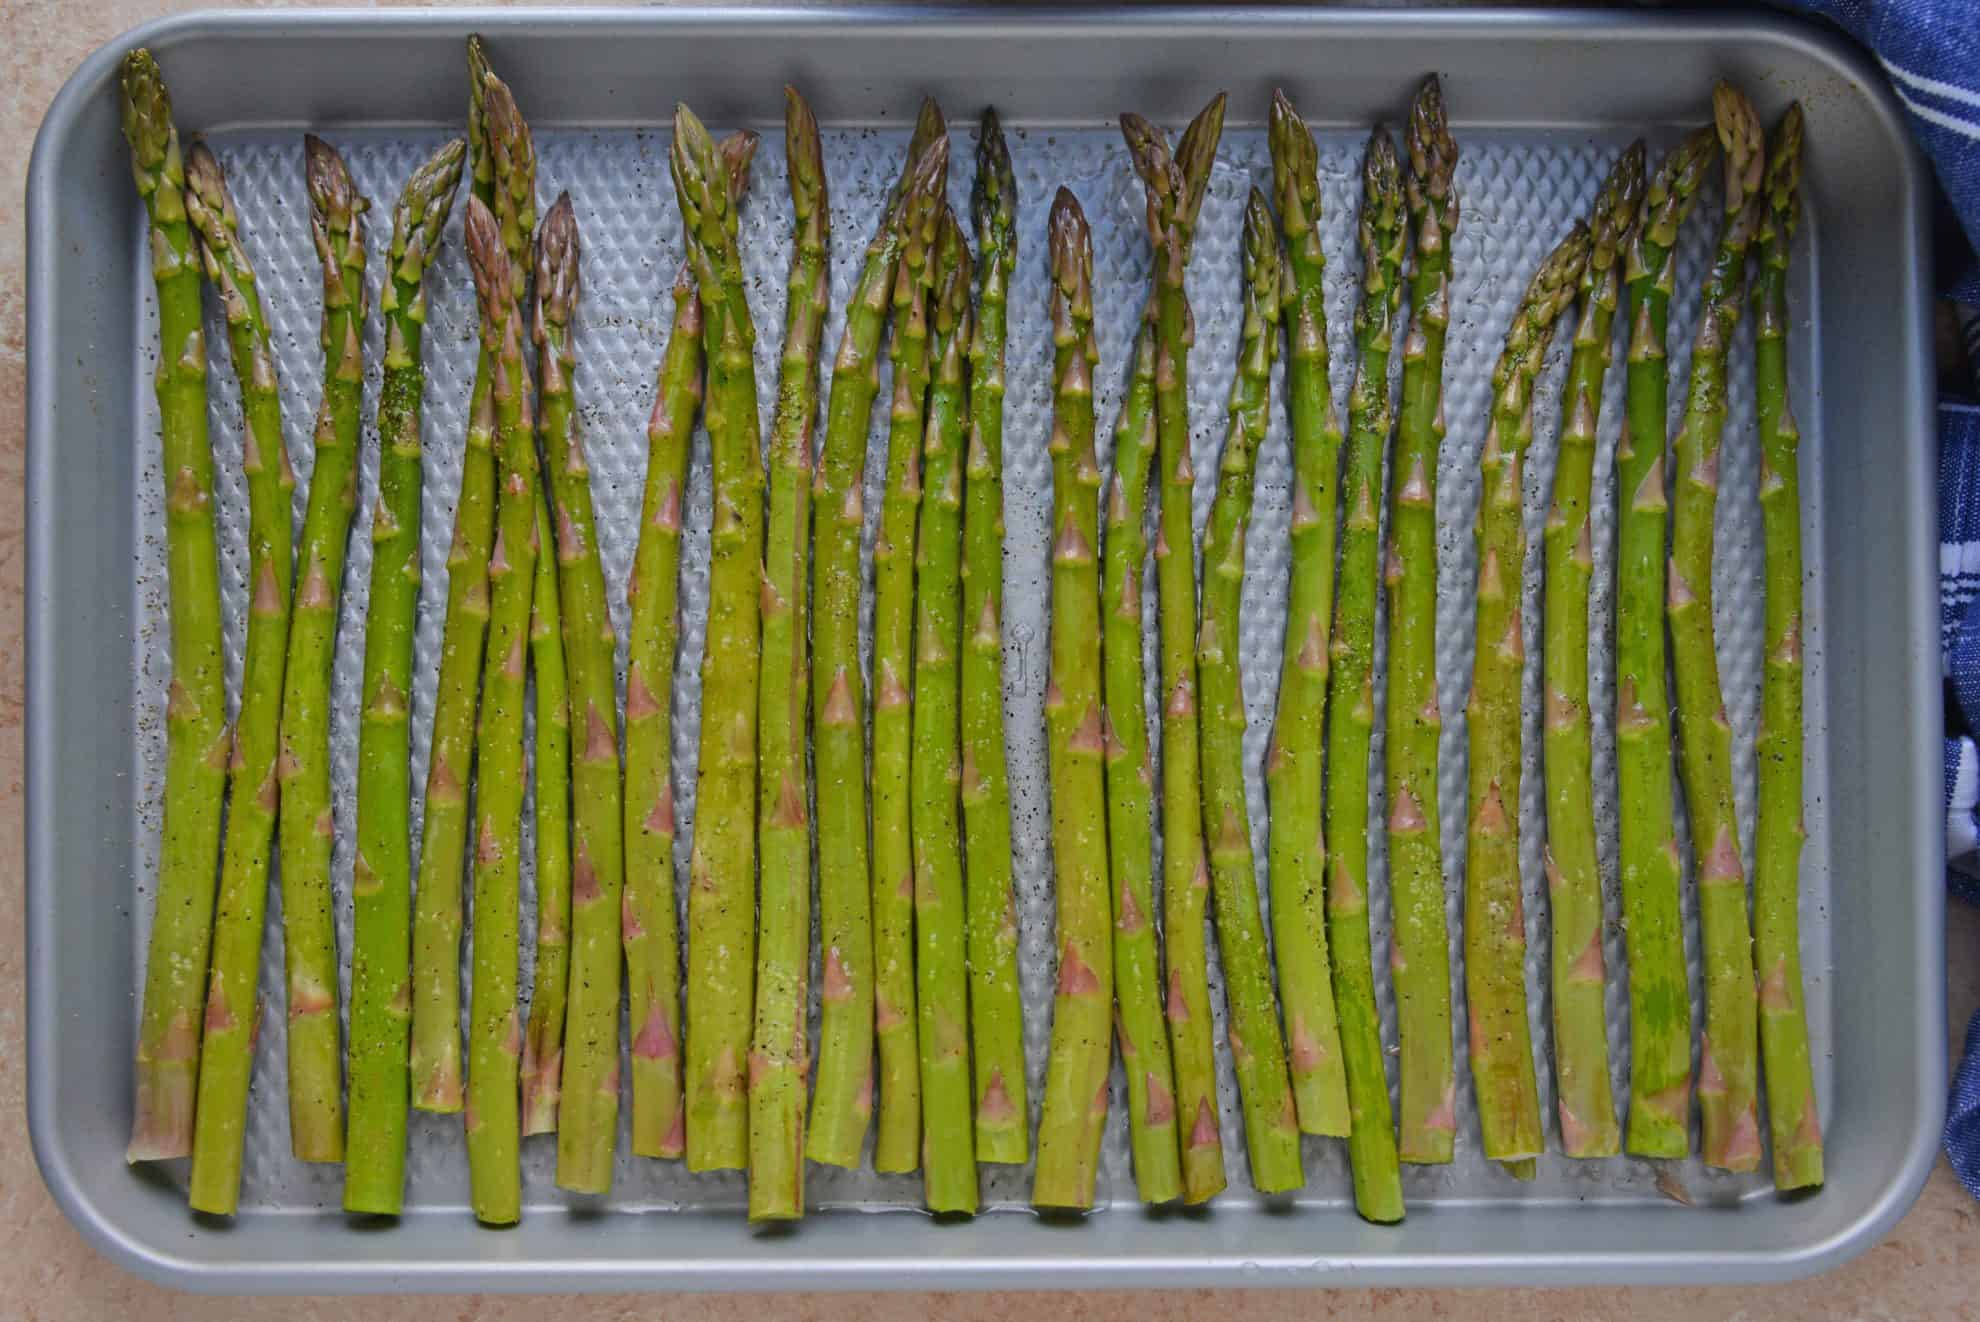 Asparagus spears on baking sheet